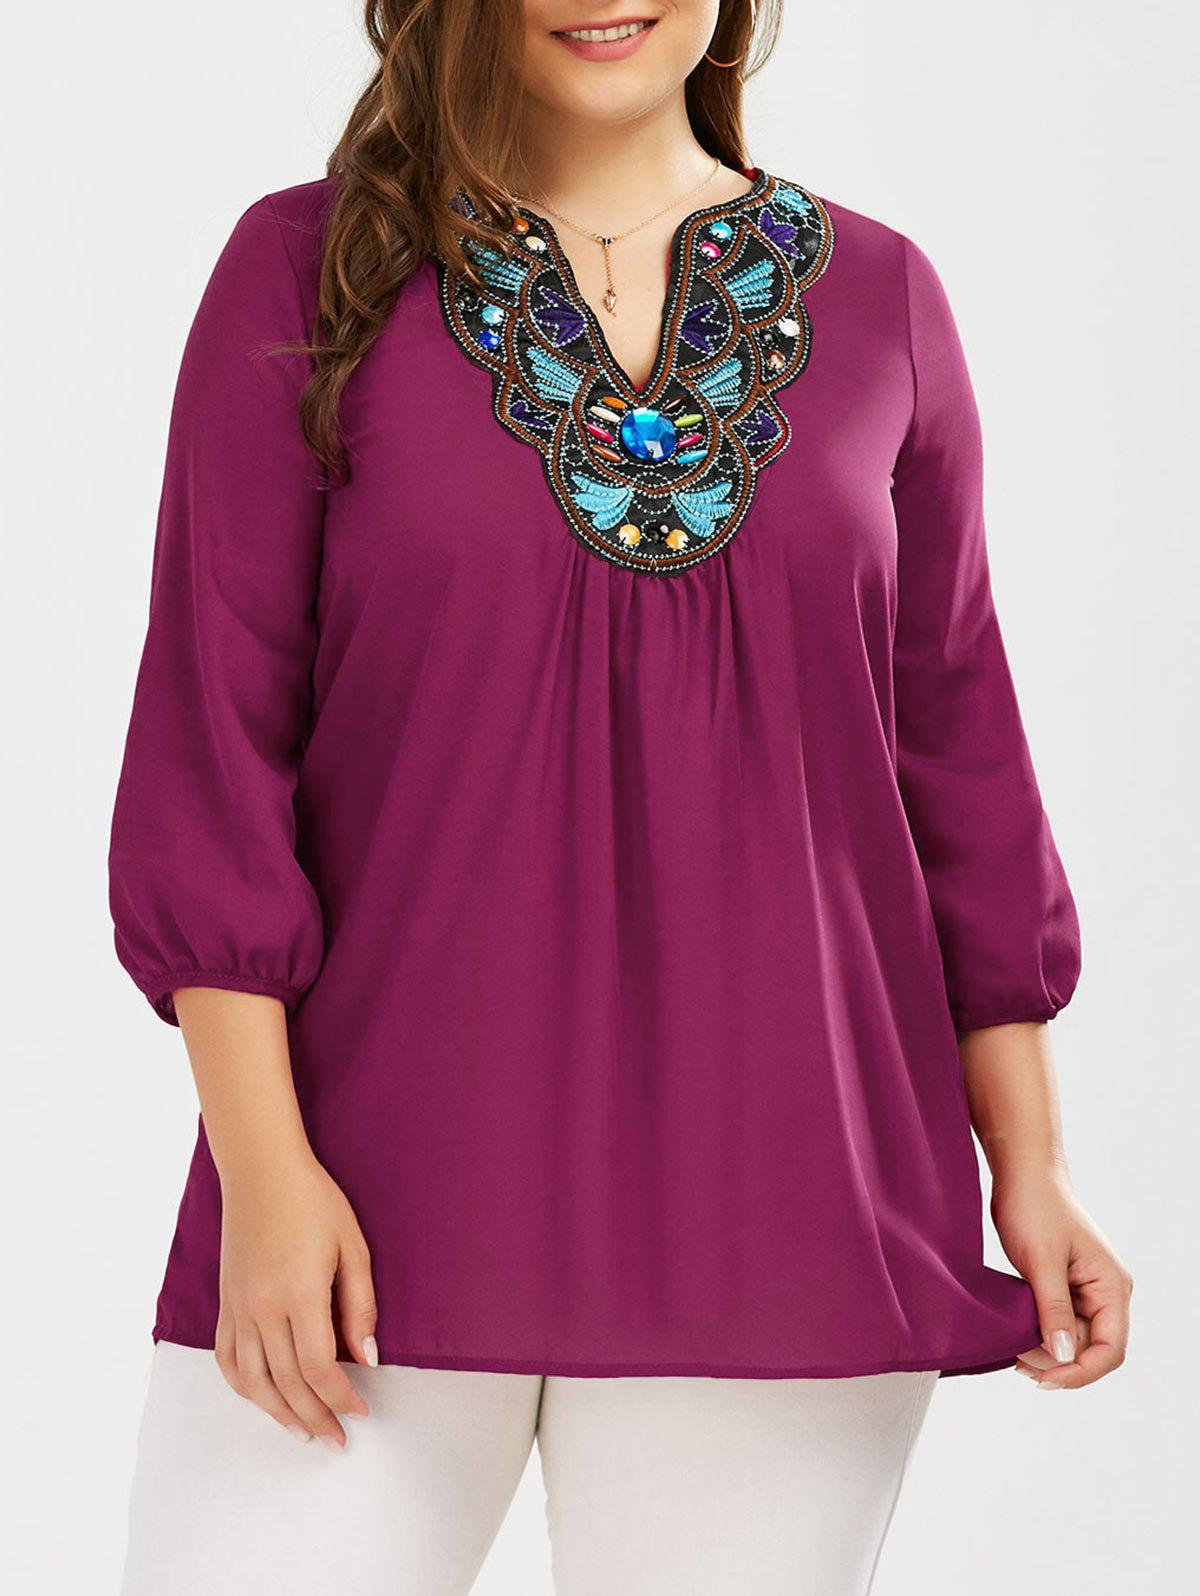 Plus Size Embroidered Rhinestone Tunic BlouseWOMEN<br><br>Size: XL; Color: PURPLISH RED; Material: Polyester; Shirt Length: Long; Sleeve Length: Three Quarter; Collar: V-Neck; Style: Casual; Season: Fall,Spring,Summer; Embellishment: Embroidery; Pattern Type: Others; Weight: 0.2370kg; Package Contents: 1 x Blouse;